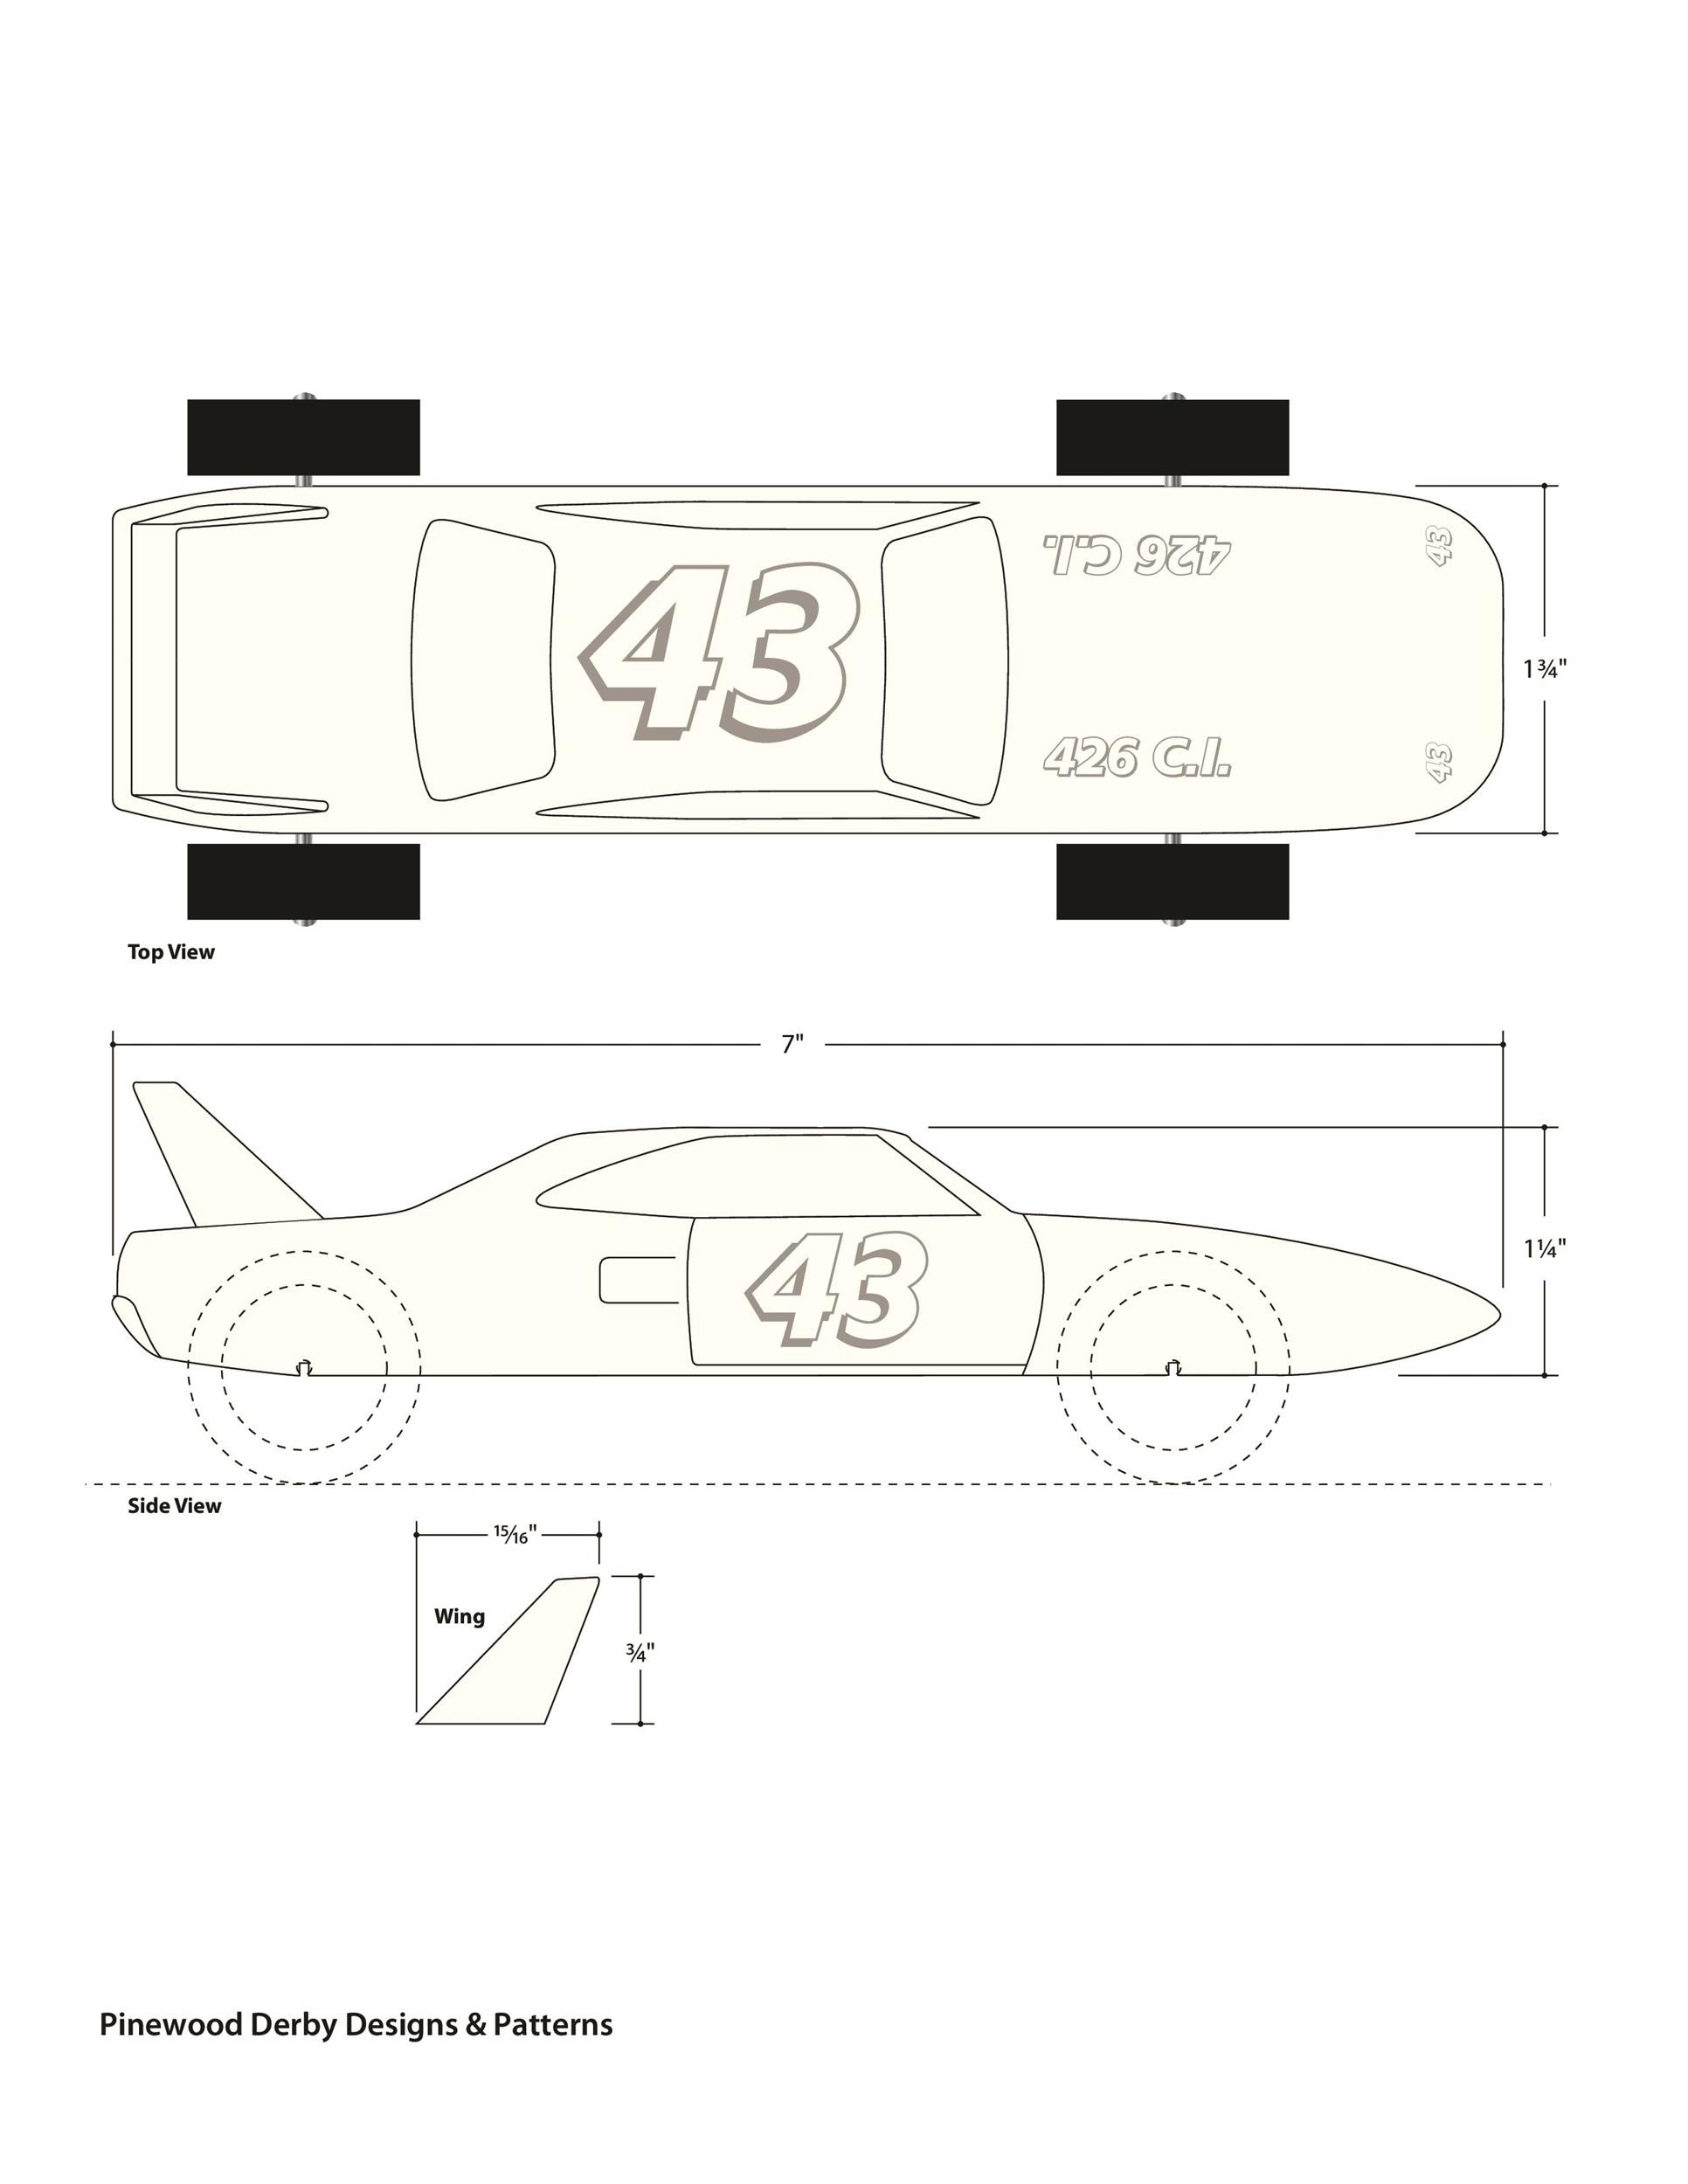 free pinewood derby templates 02 printable pinewood derby templates 02